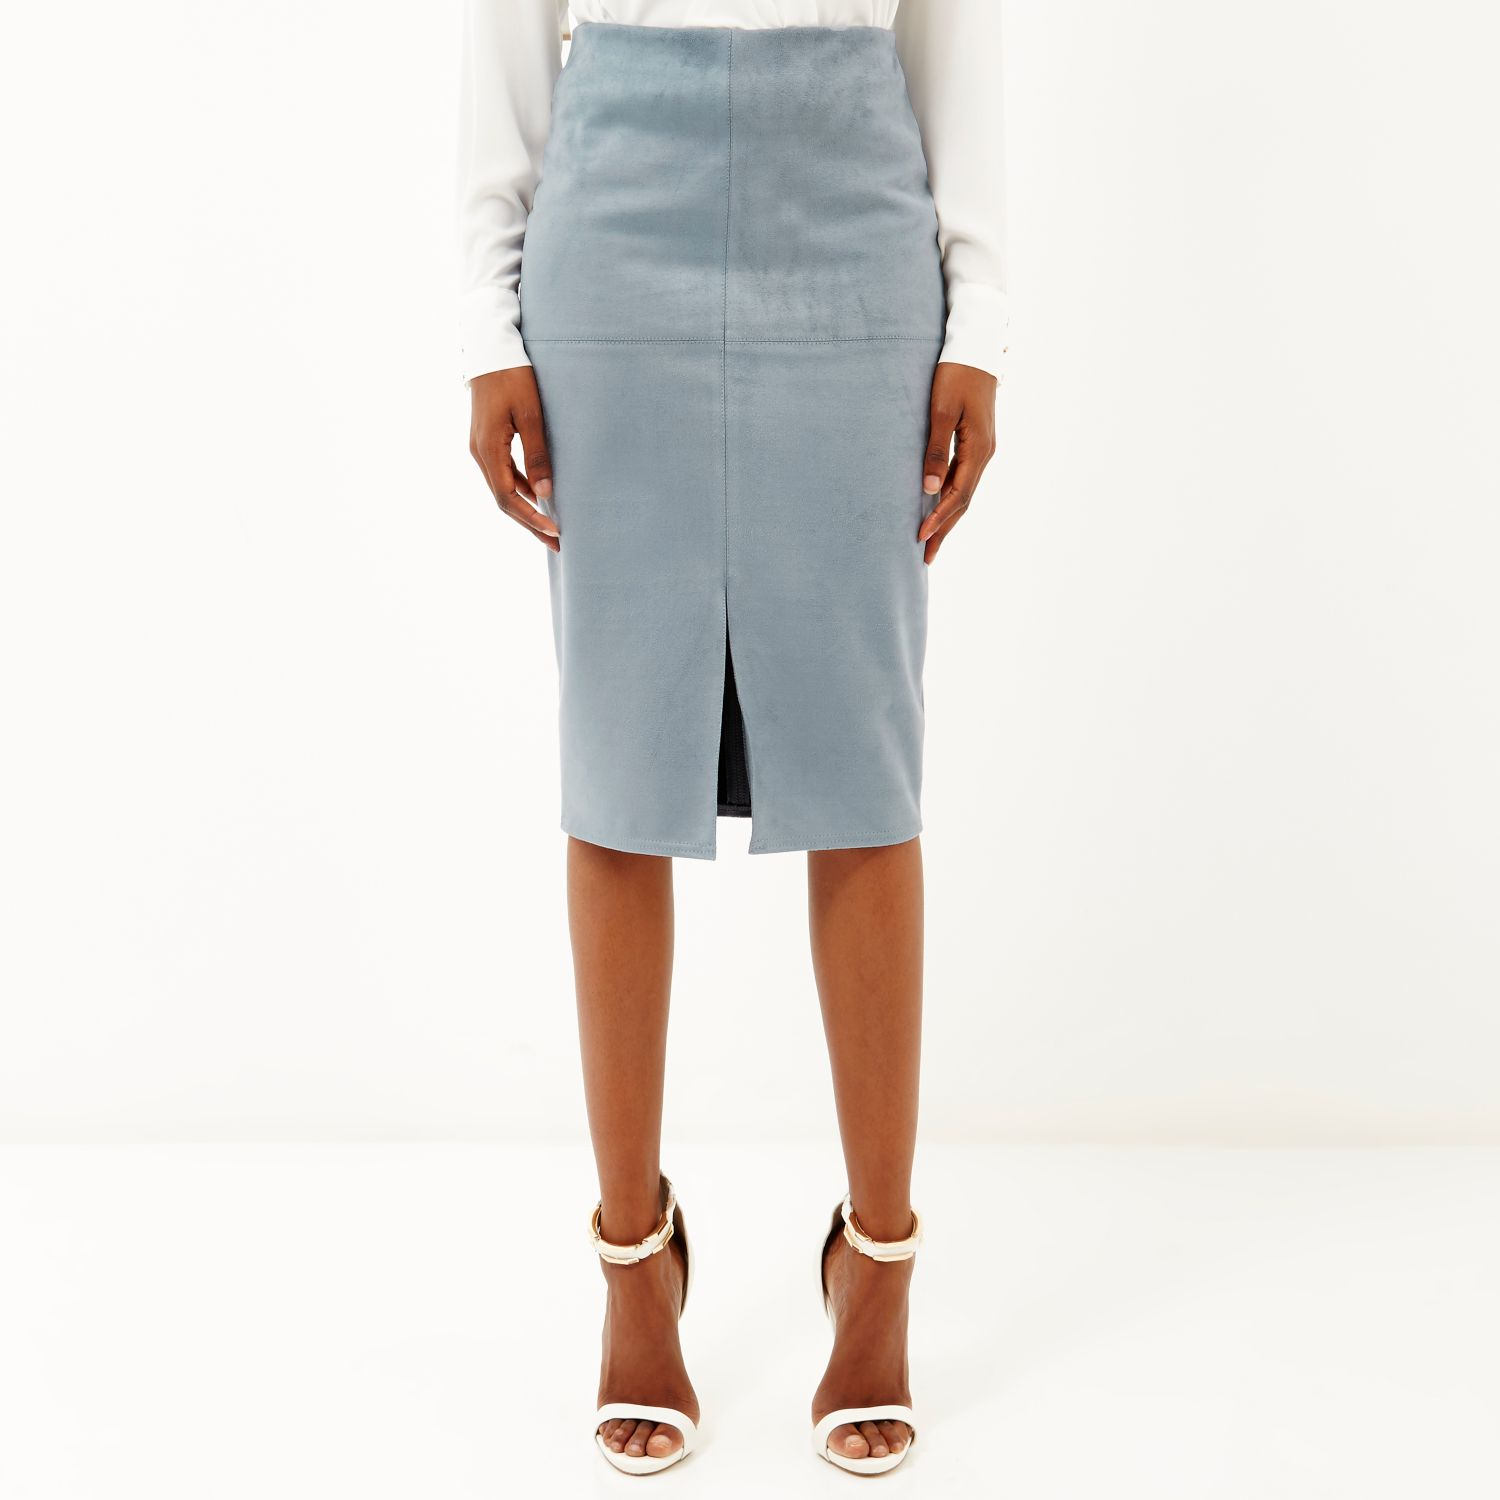 a0d4b6bc99 River Island Blue Faux-suede Split Front Pencil Skirt in Blue - Lyst